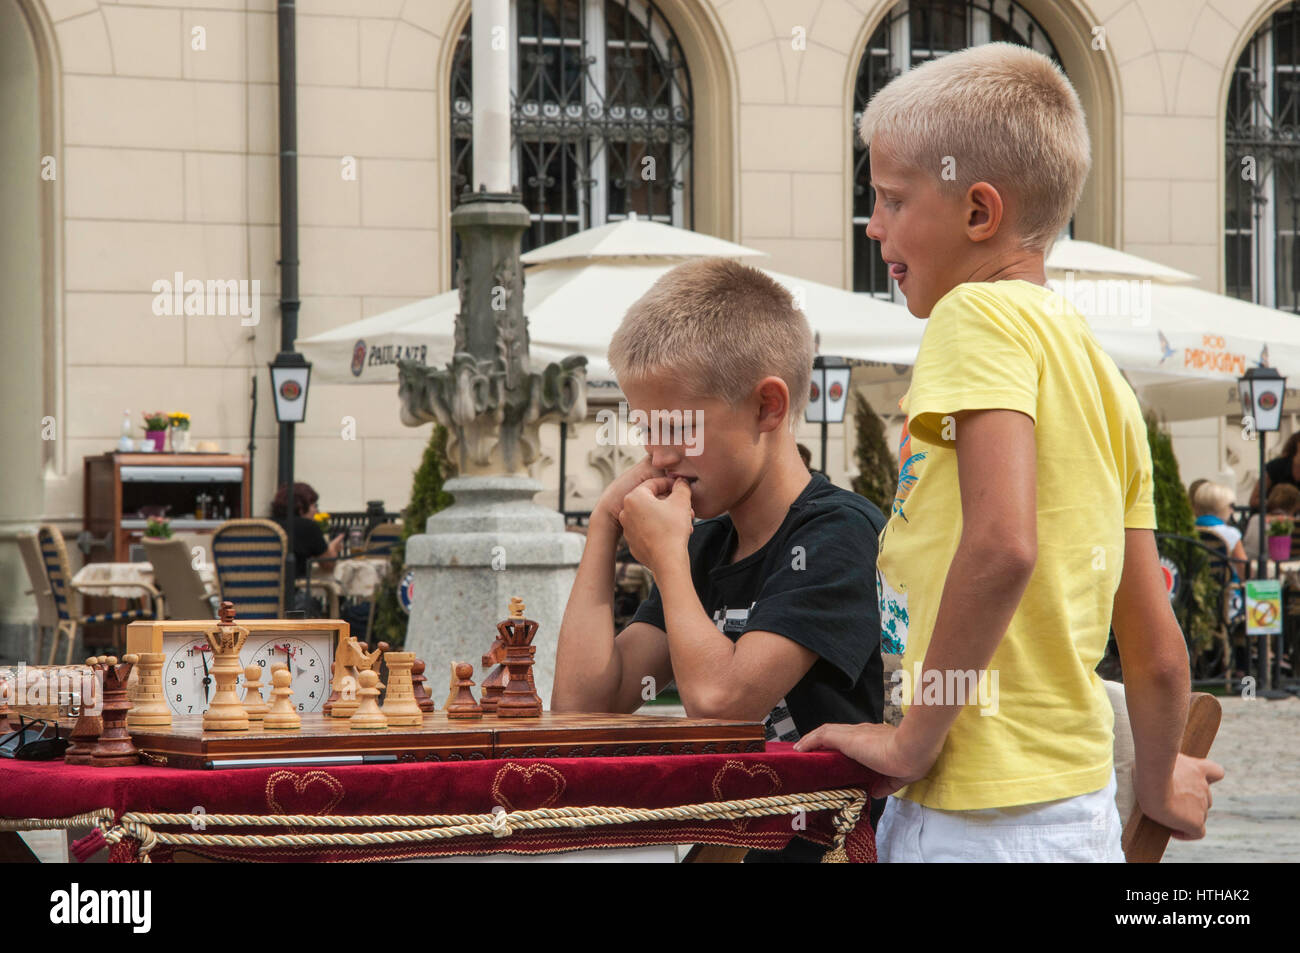 Playing chess at Rynek (Market Square) in Wroclaw, Lower Silesia, Poland - Stock Image